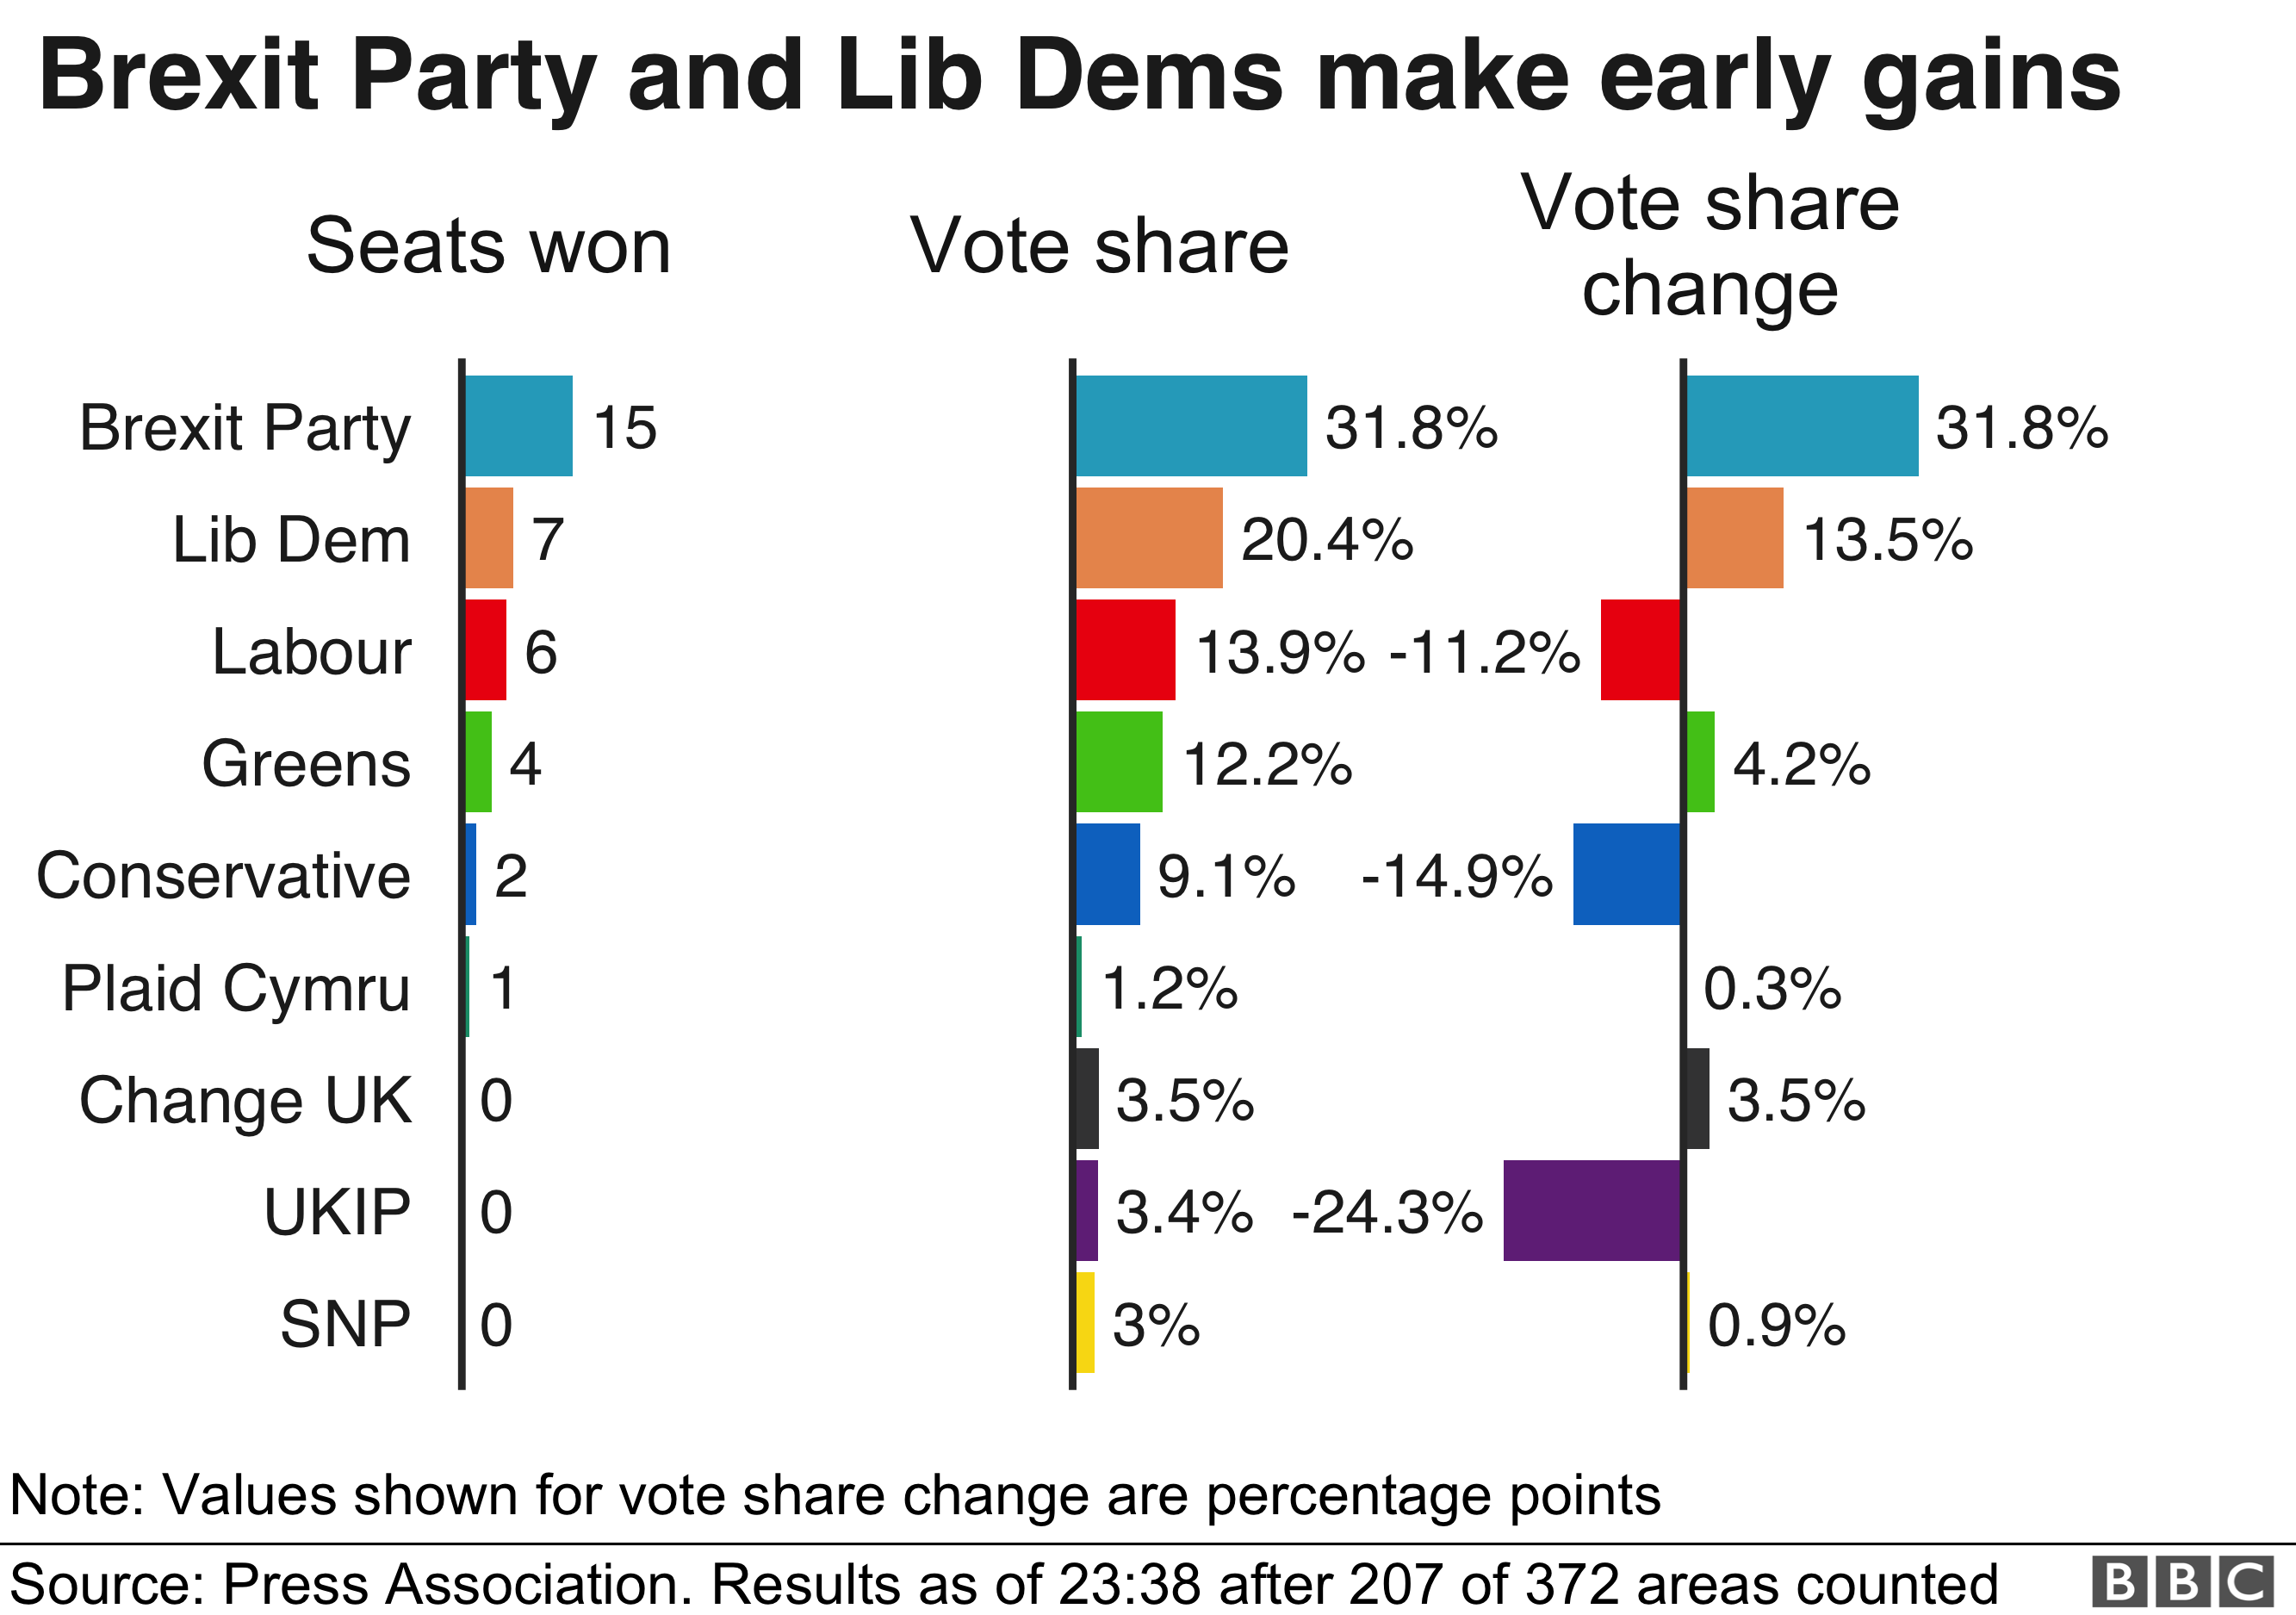 The Brexit Party and Lib Dems have made early gains